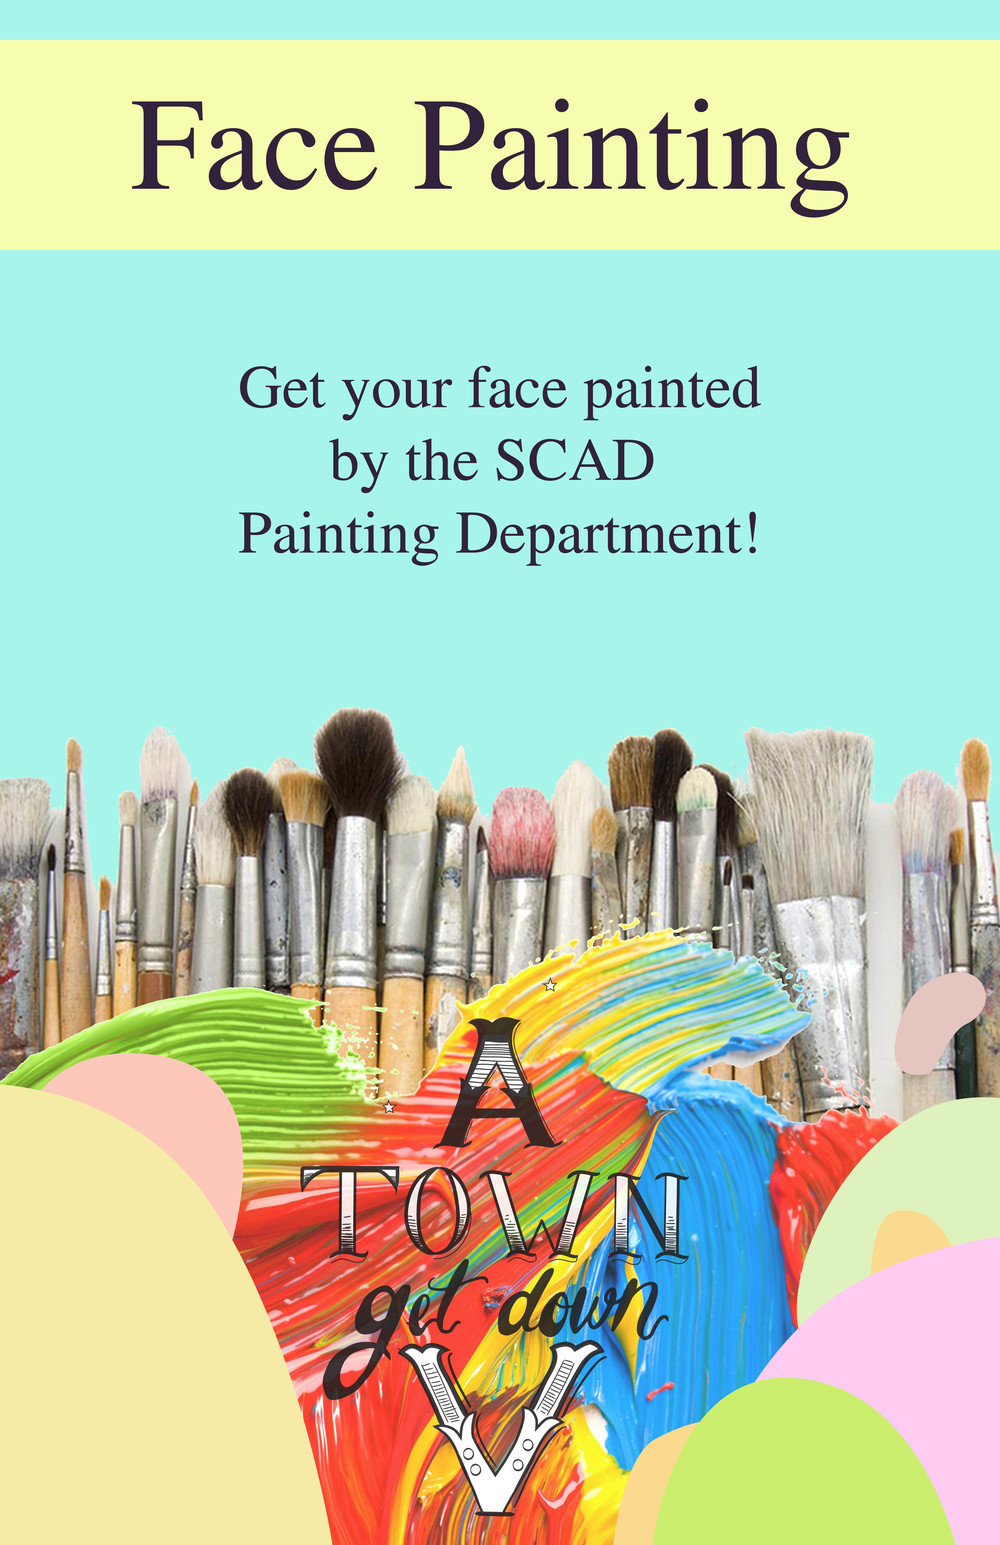 FacePaintingSign.jpg